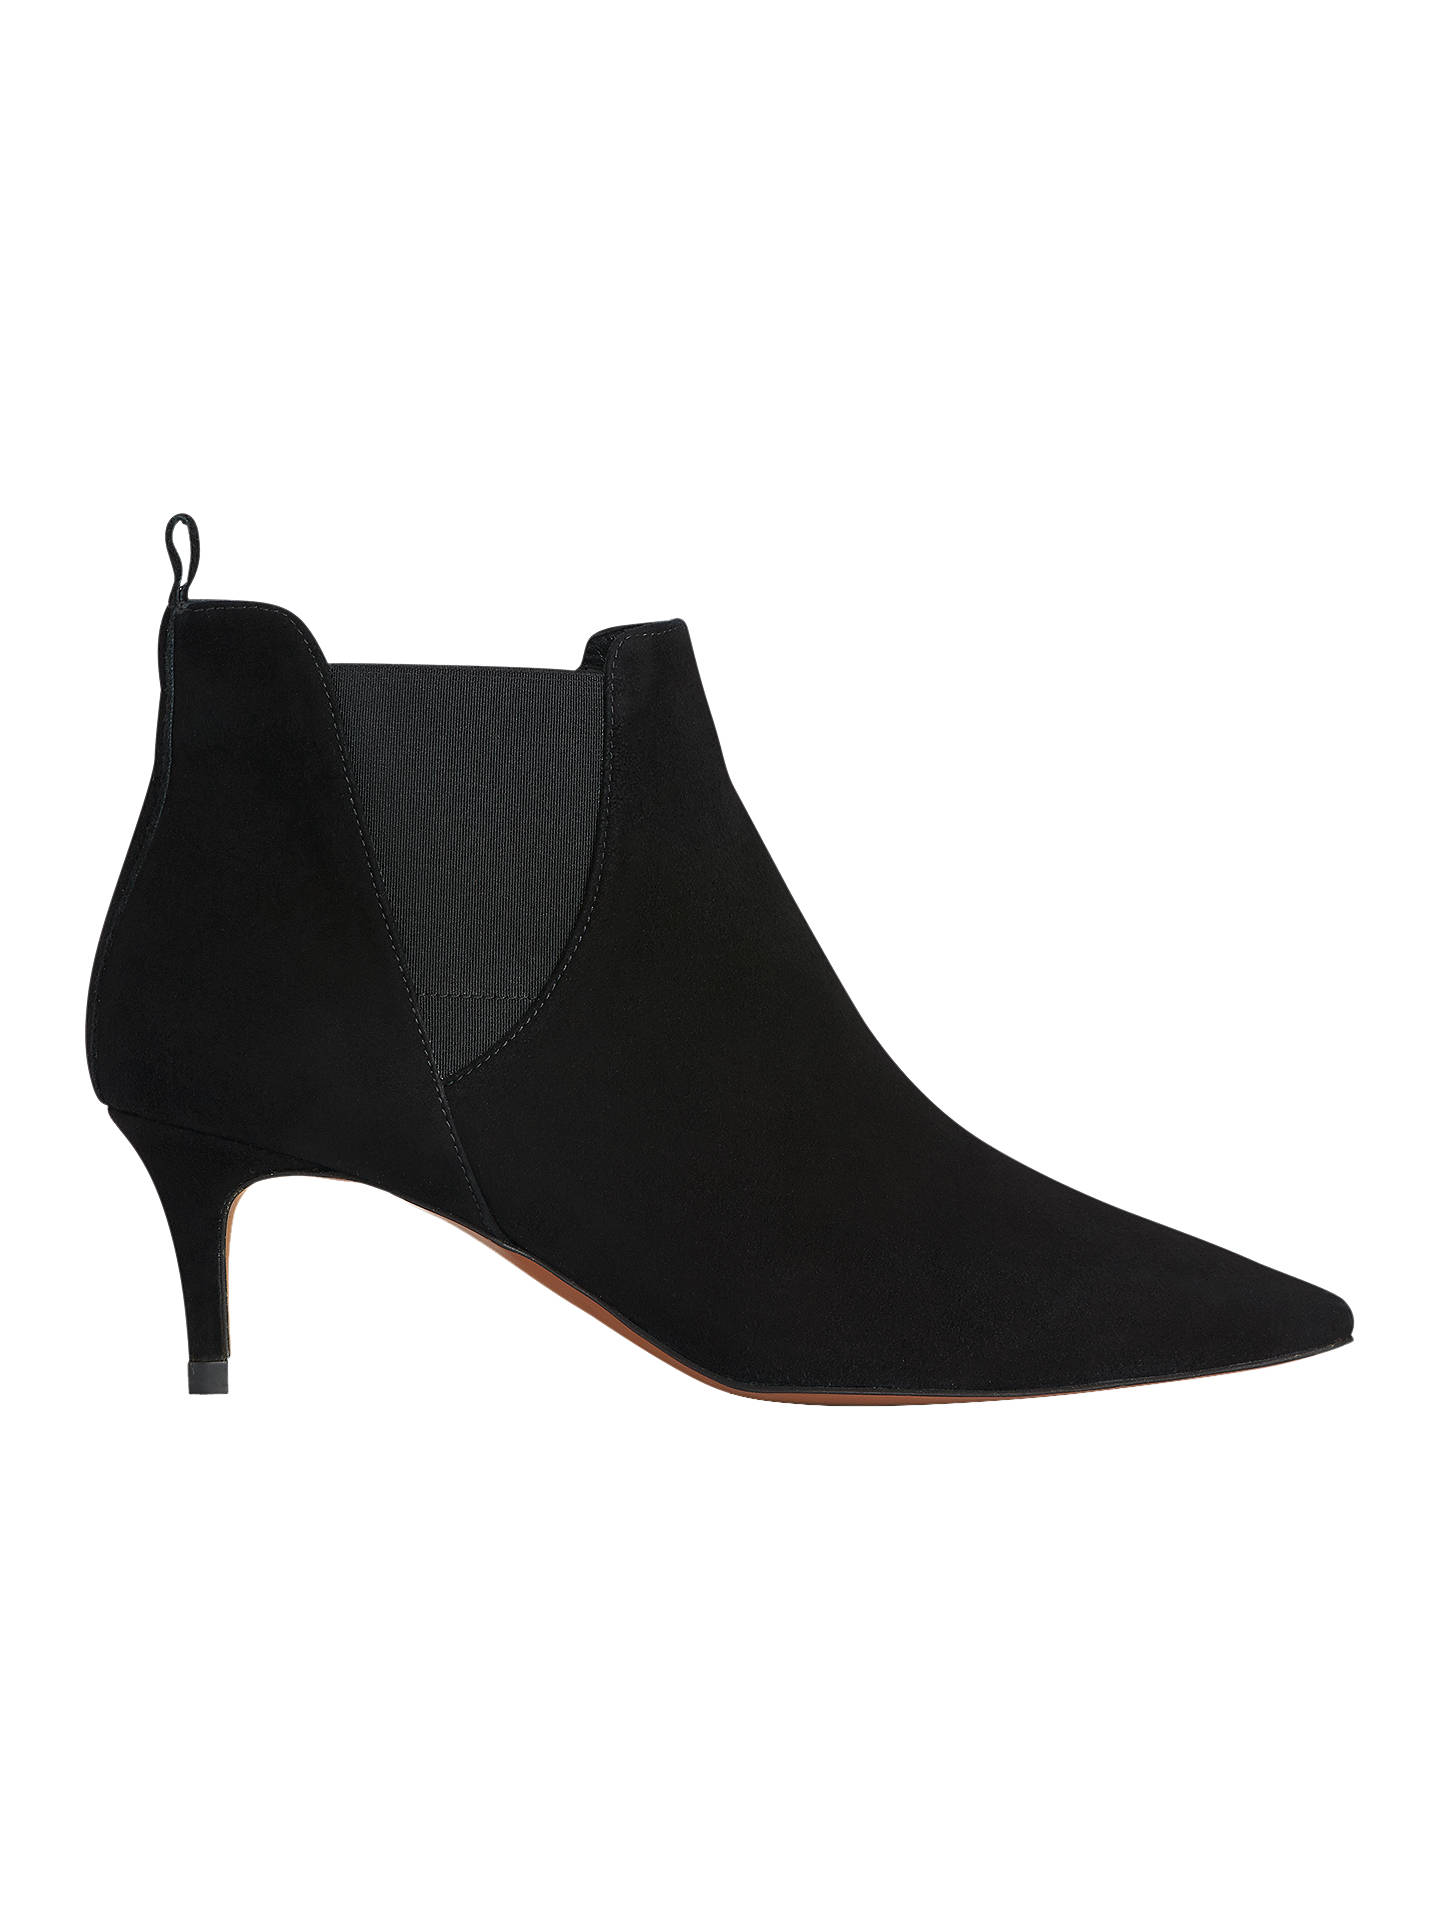 913743d8210b Buy Whistles Orley Pointed Toe Ankle Boots